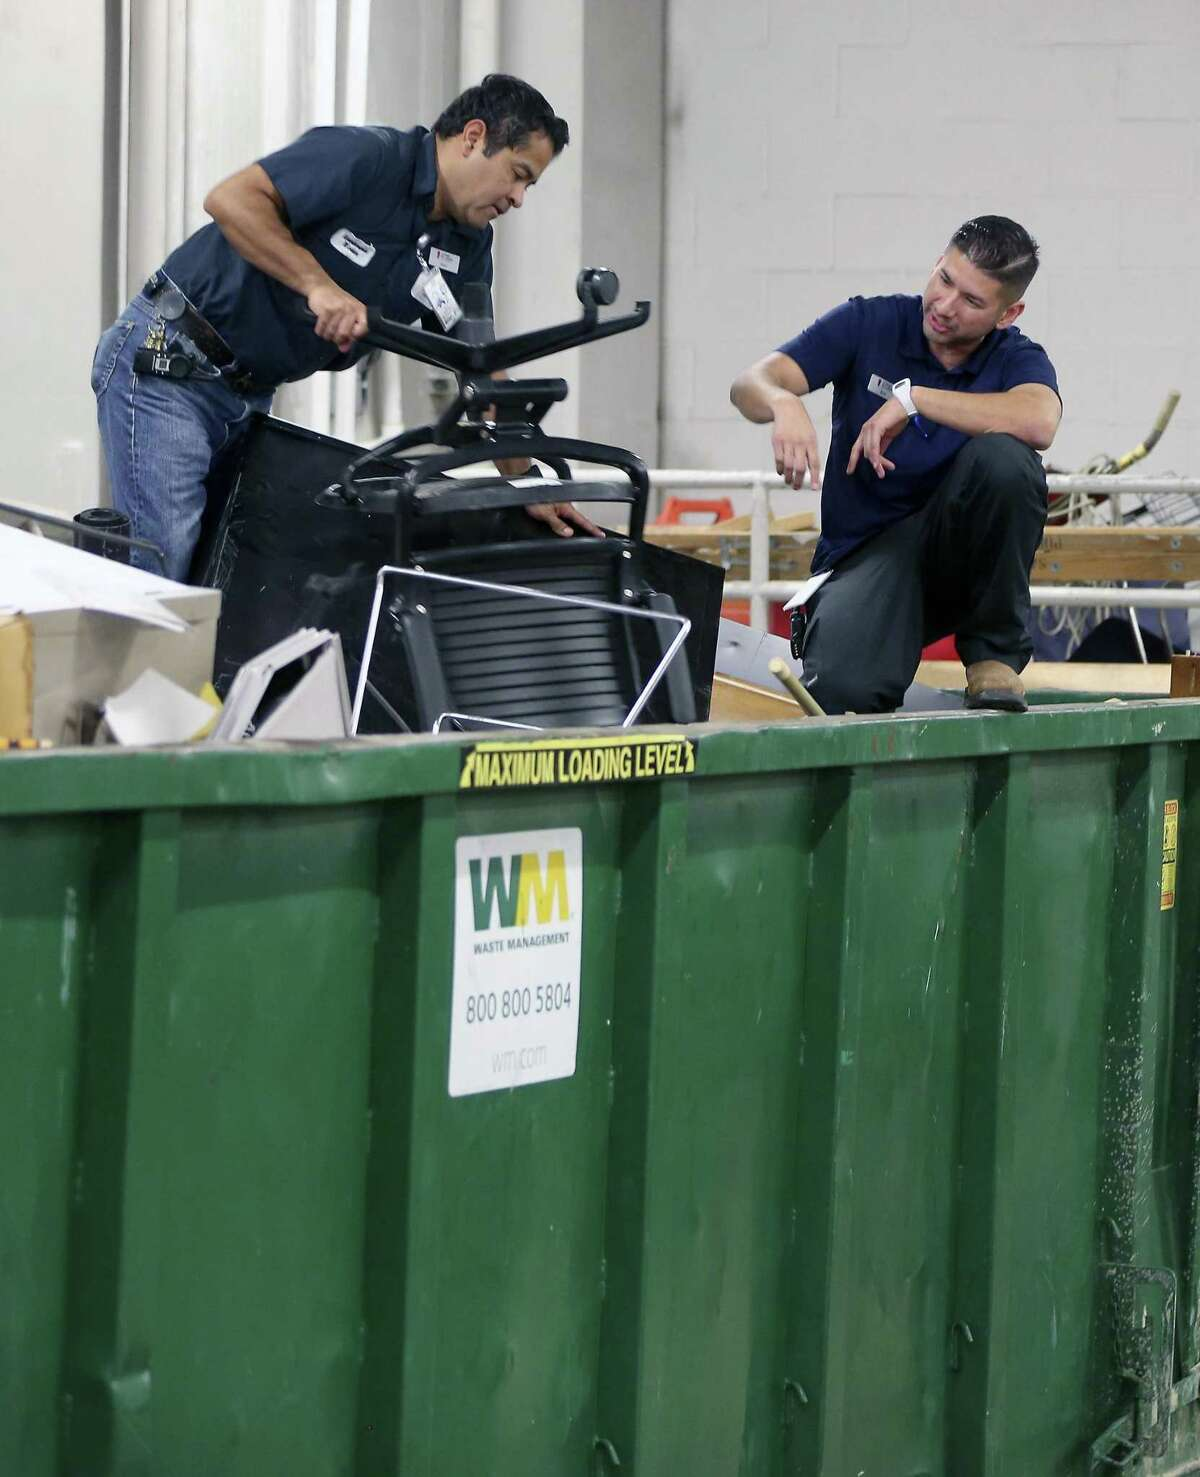 Eric Pena, right, works in the loading dock Thursday, April 13, 2017 at the San Antonio Public Library Main Branch with one of his facilities maintenance team members. Pena is interested in returning to college to finish his degree. He will likely participate in the new Upgrade program, a collaboration between the city and education nonprofits to provide services and counseling for adults looking to return to school.